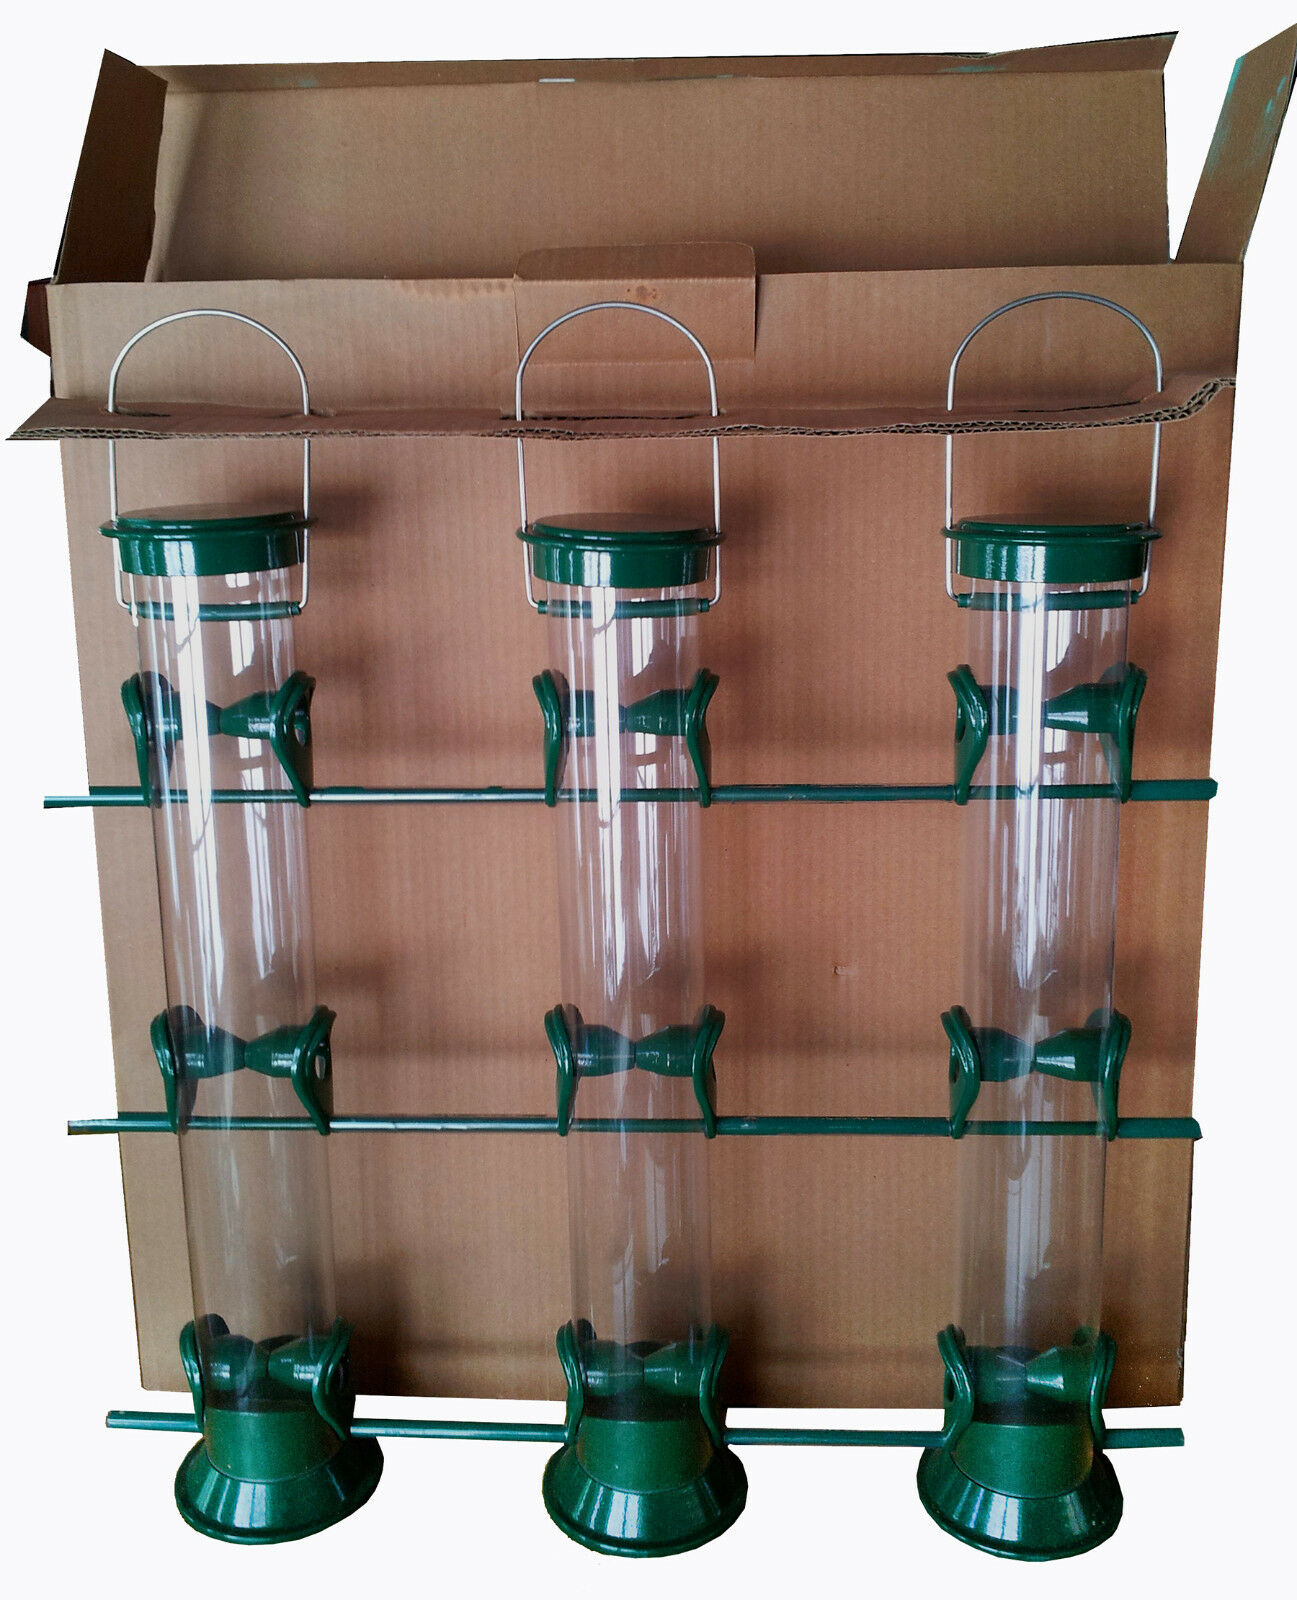 TRIPLE-TUBE HORIZONTAL SUNFLOWER / MIX SEED FEEDER